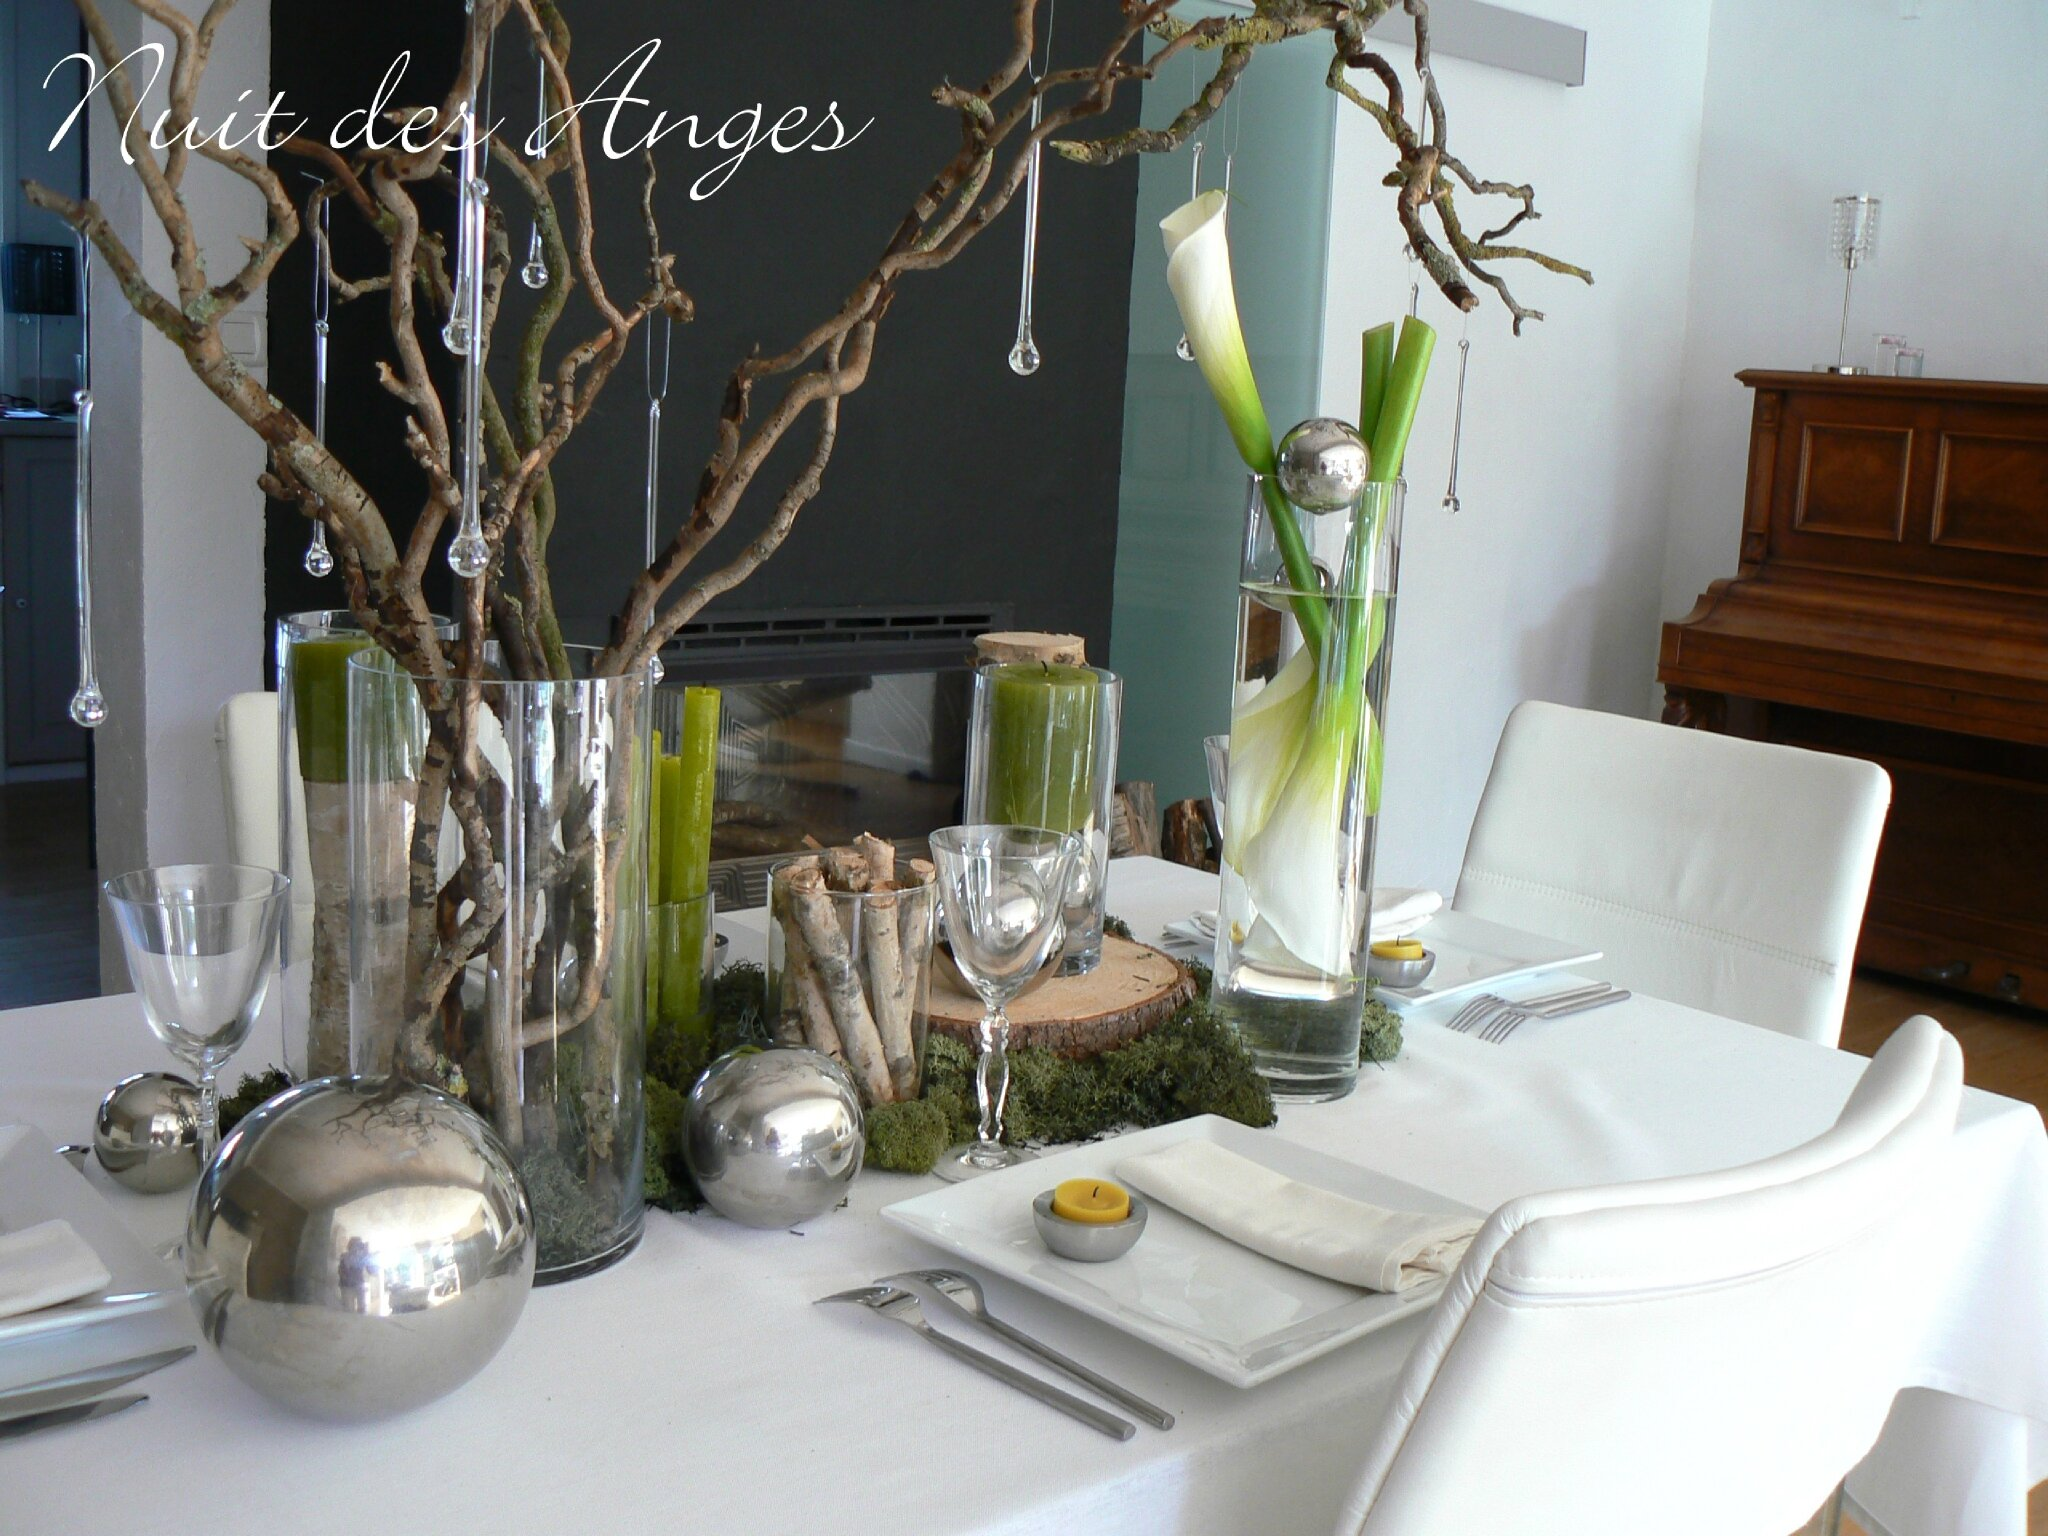 Nuit des anges d coratrice de mariage d coration de table - Decoration de table nature ...